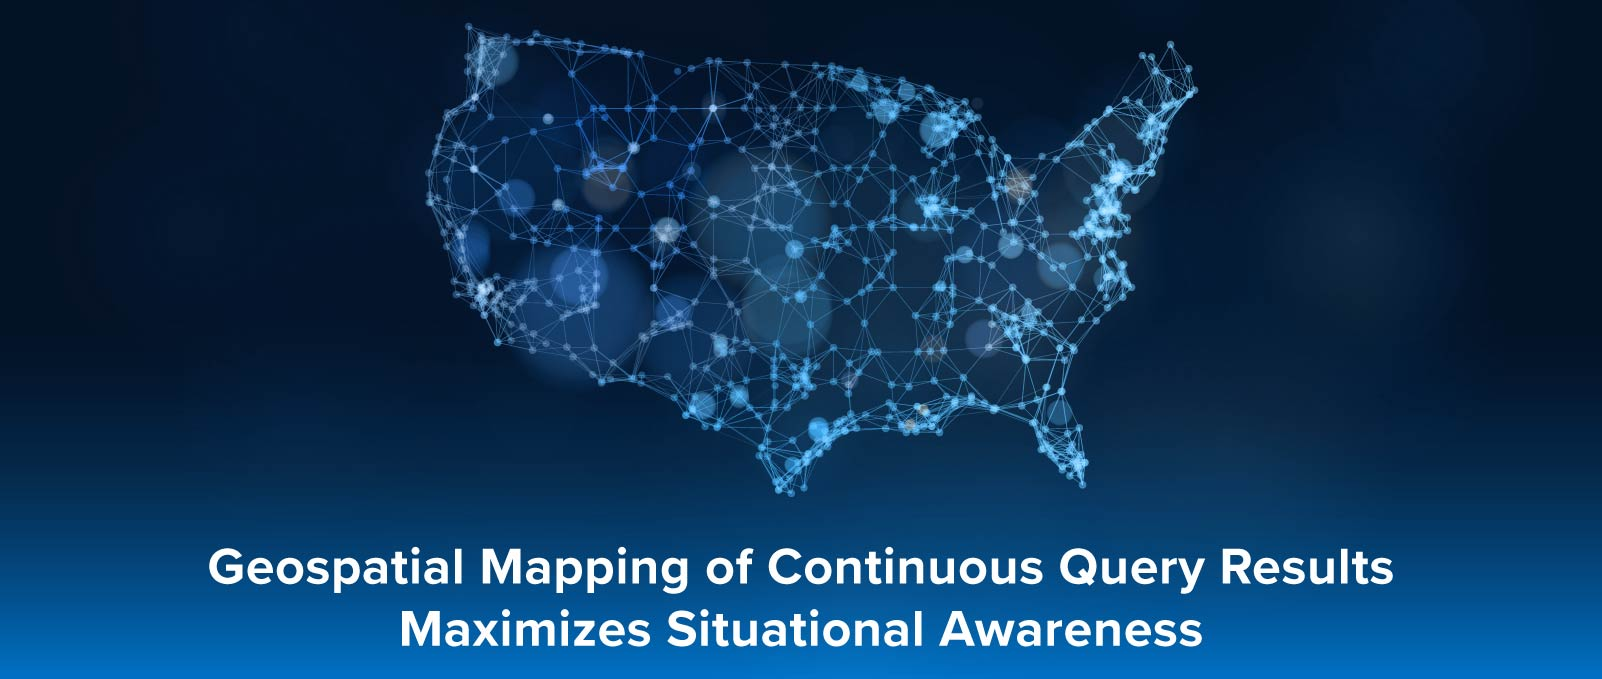 Geospatial mapping of continuous query results maximizes situational awareness.